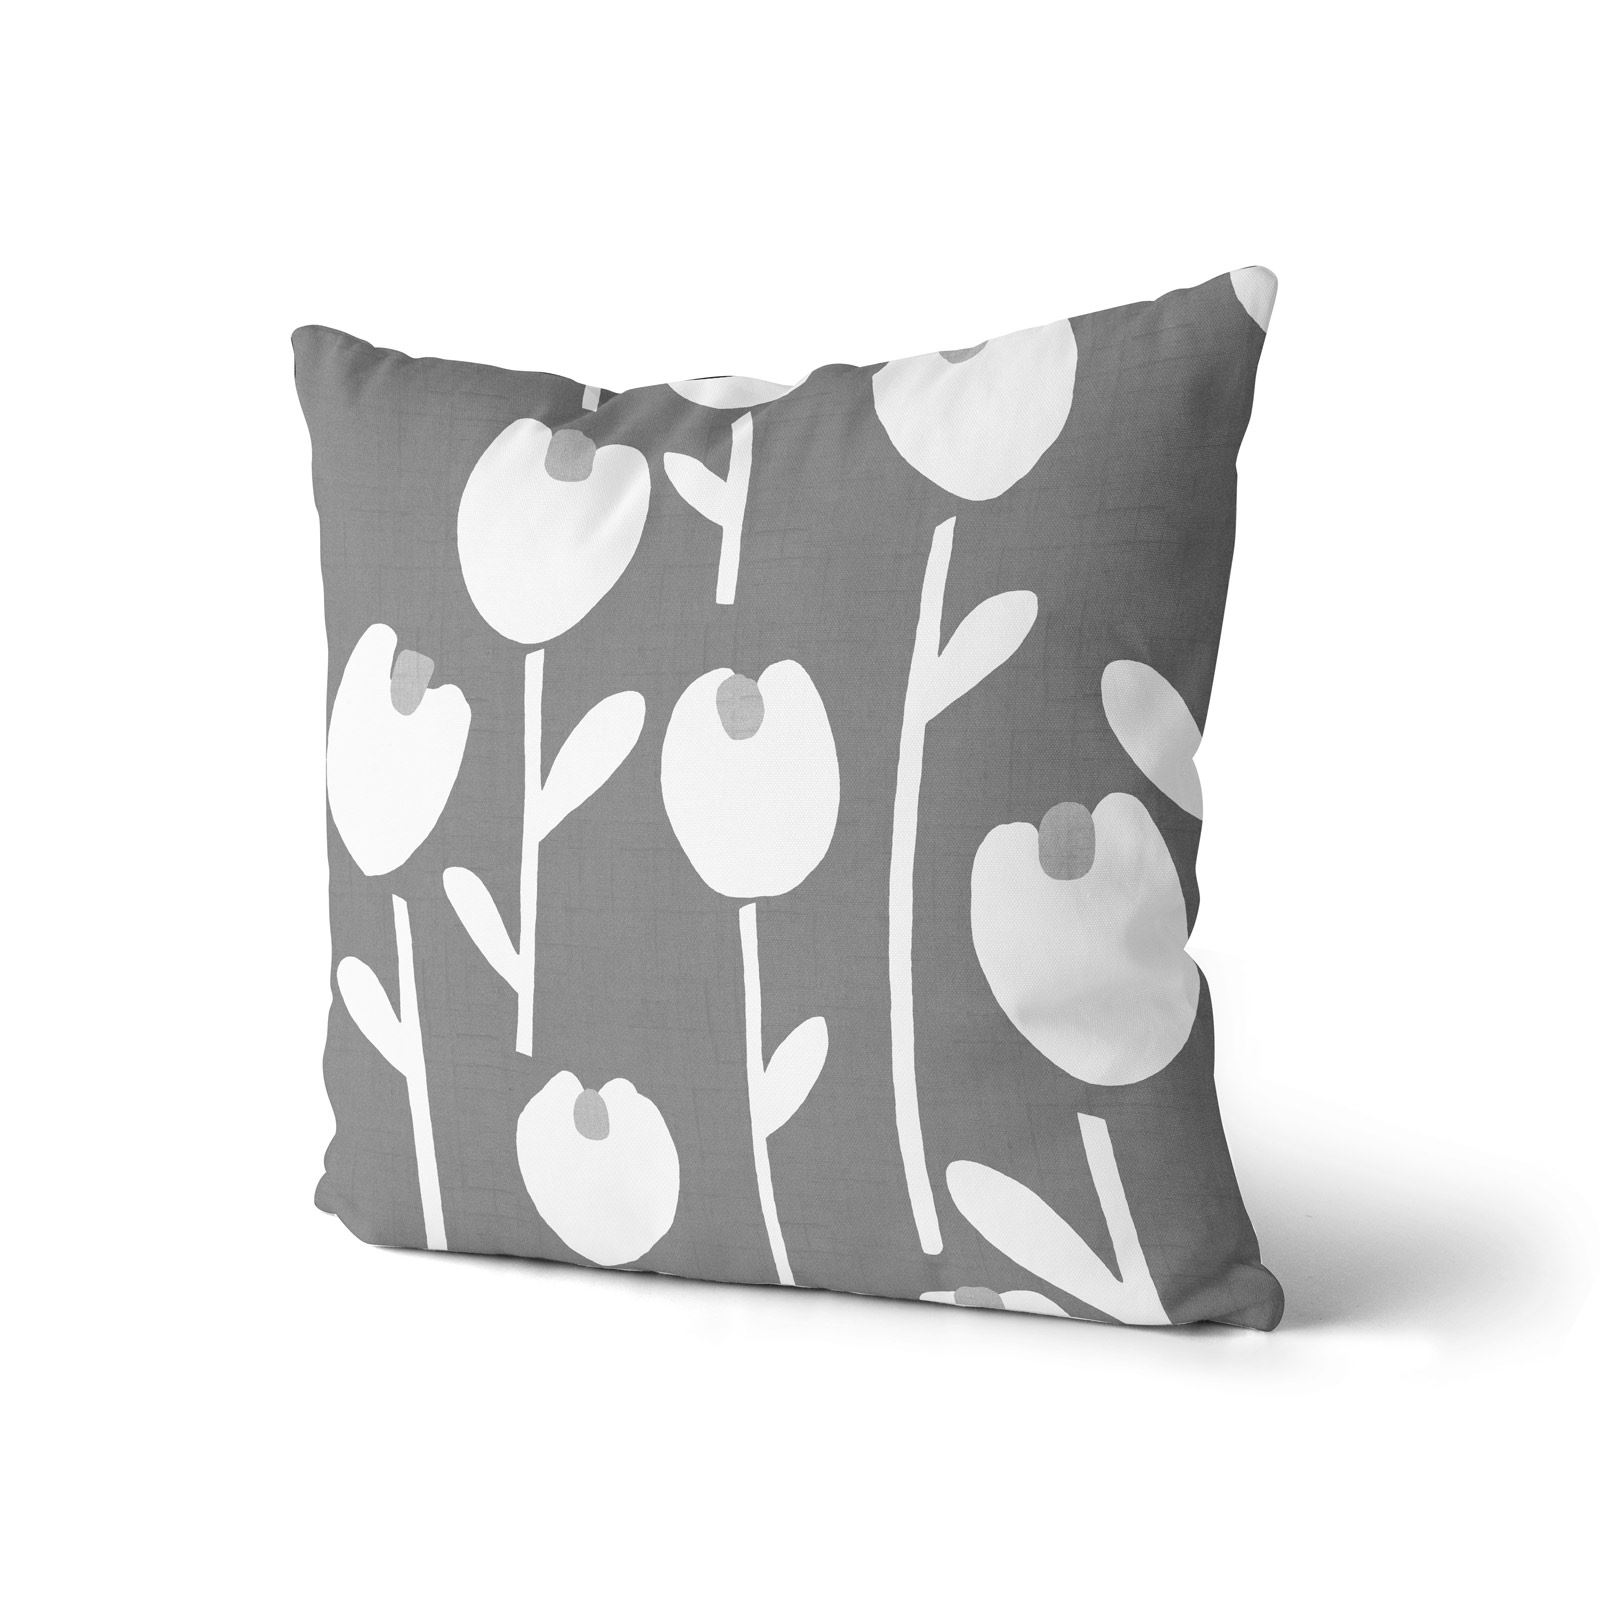 Grey-Ochre-Mustard-Cushion-Cover-Collection-17-034-18-034-Covers-Filled-Cushions thumbnail 5